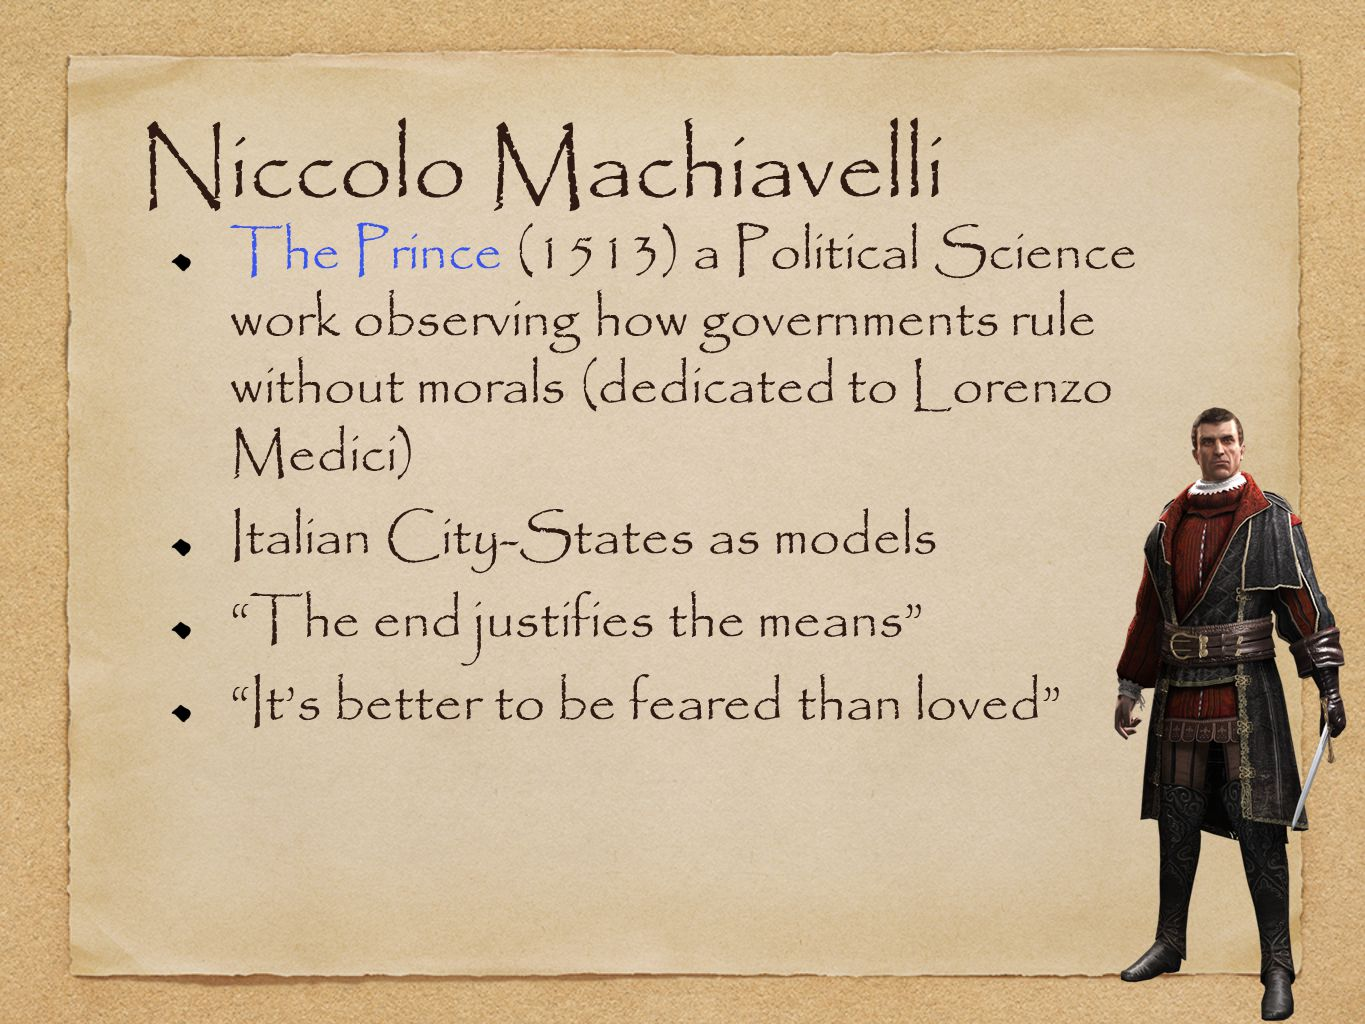 Niccolo Machiavelli The Prince (1513) a Political Science work observing how governments rule without morals (dedicated to Lorenzo Medici) Italian City-States as models The end justifies the means Its better to be feared than loved